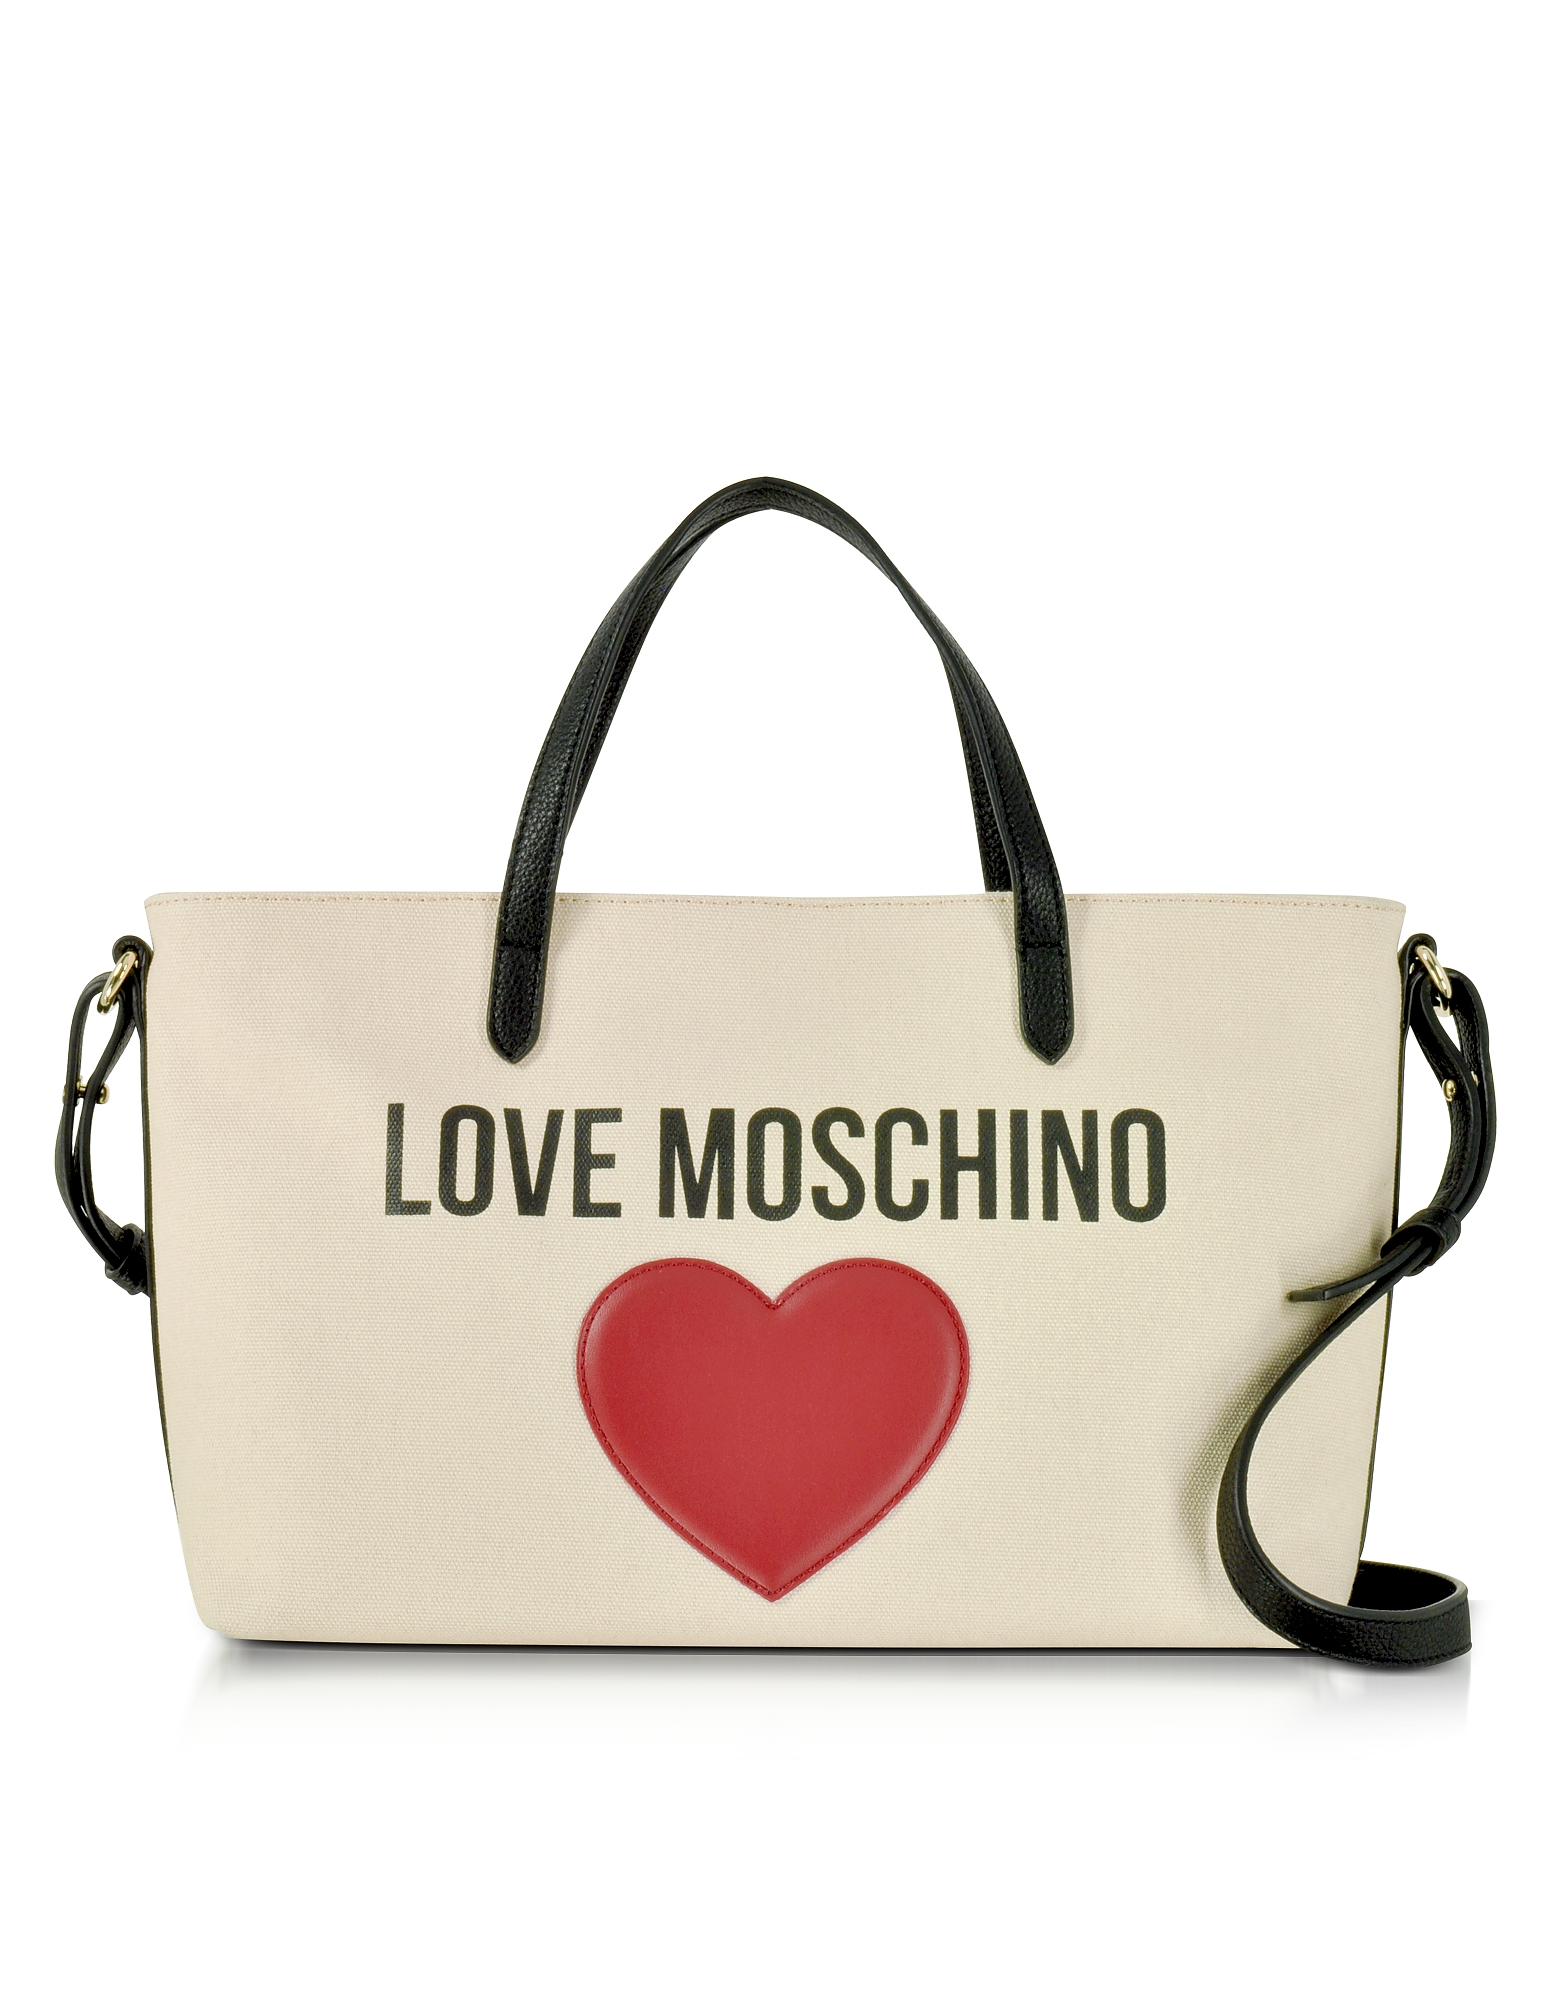 Love Moschino & Heart - Сумка Tote из Хлопка с Ремешком